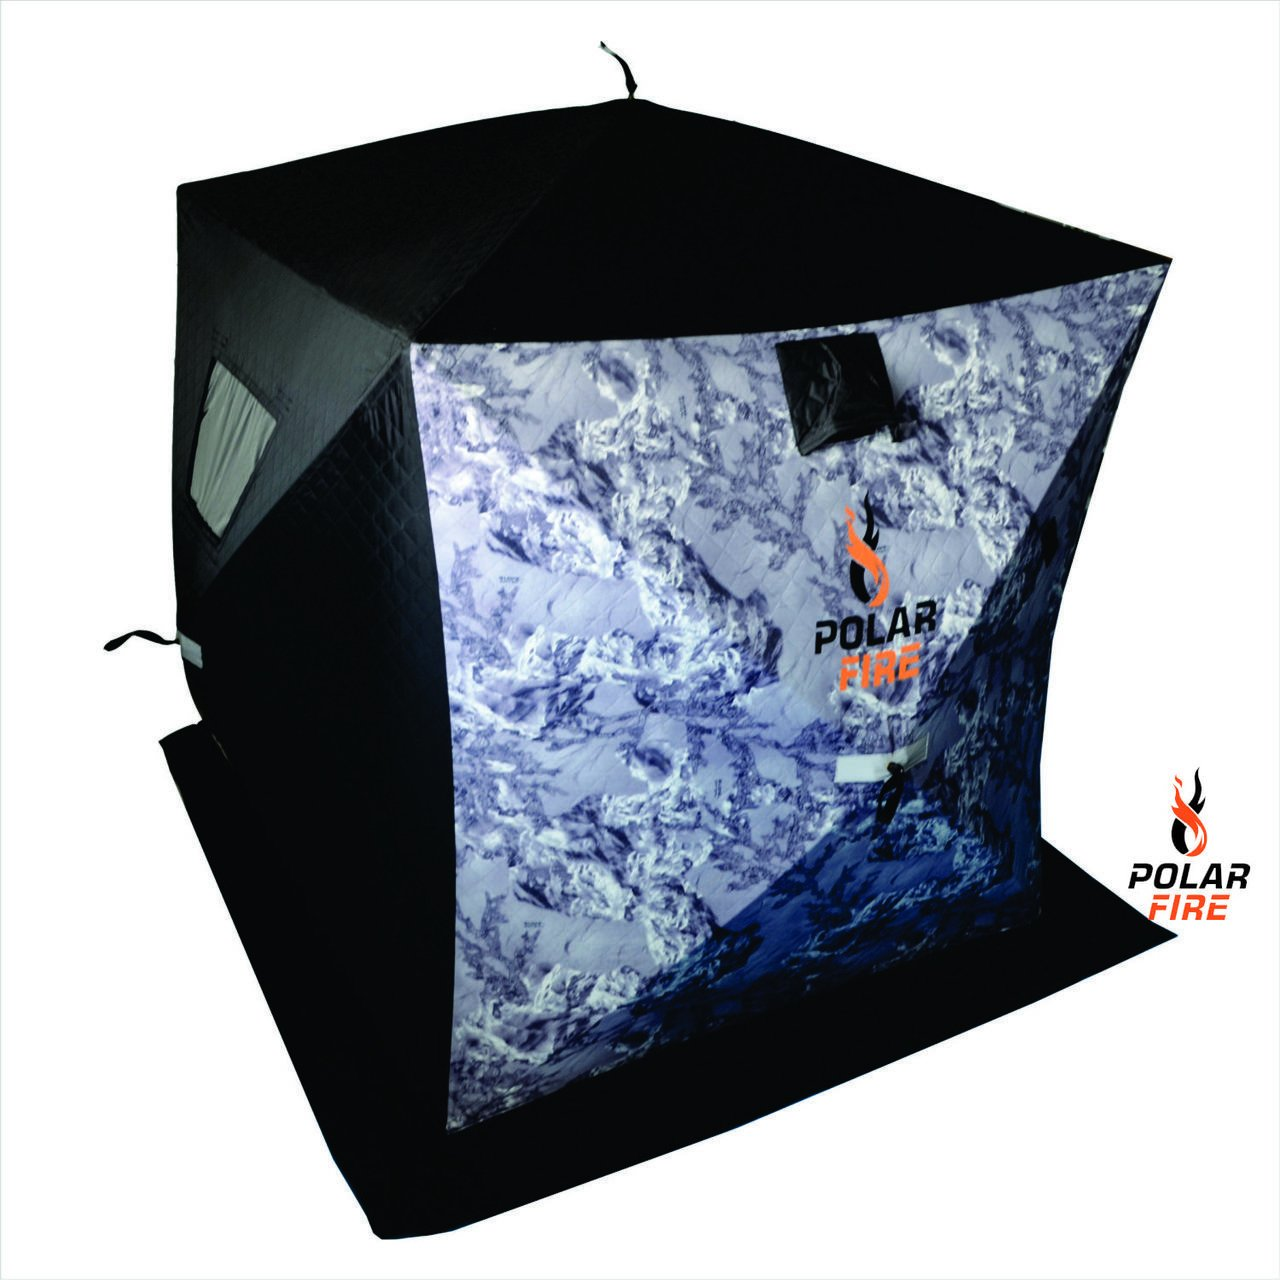 HT Polar Fire Xtreme TX 2-Man Shelter with Polar TX Insulation - Includes Free Items